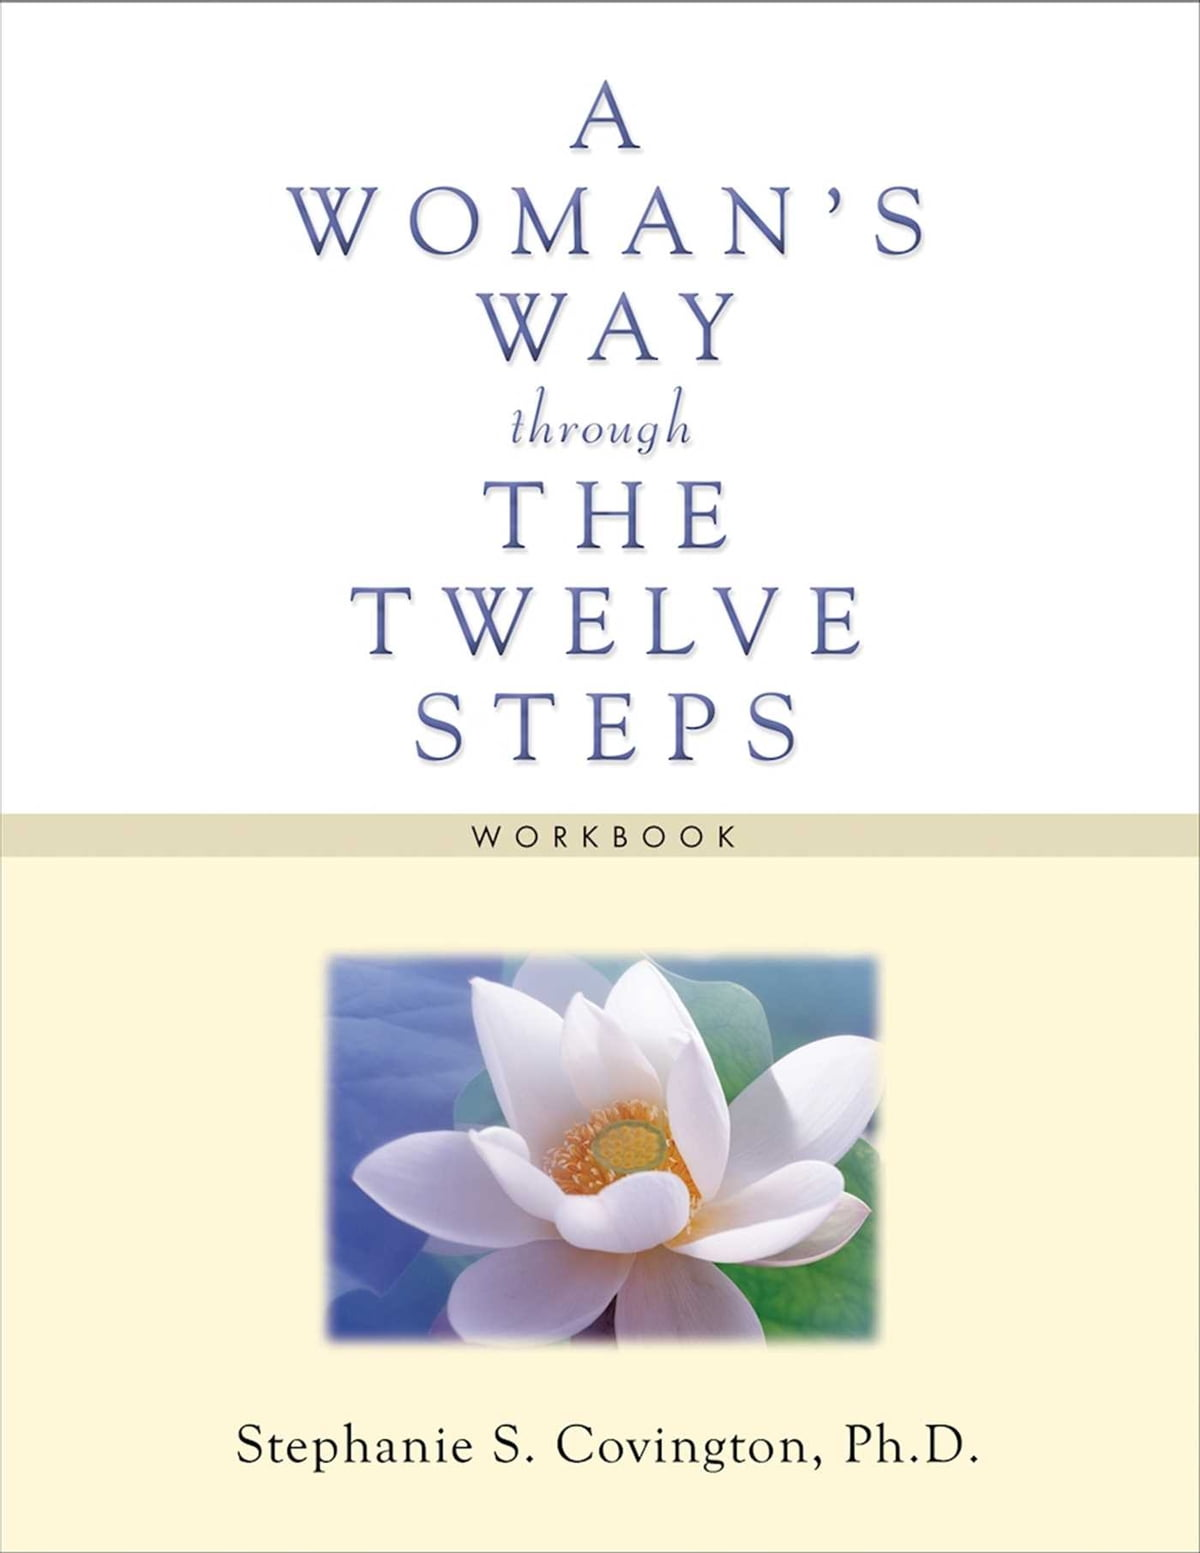 Workbooks codependents anonymous workbook : A Woman's Way through the Twelve Steps Workbook eBook by Stephanie ...